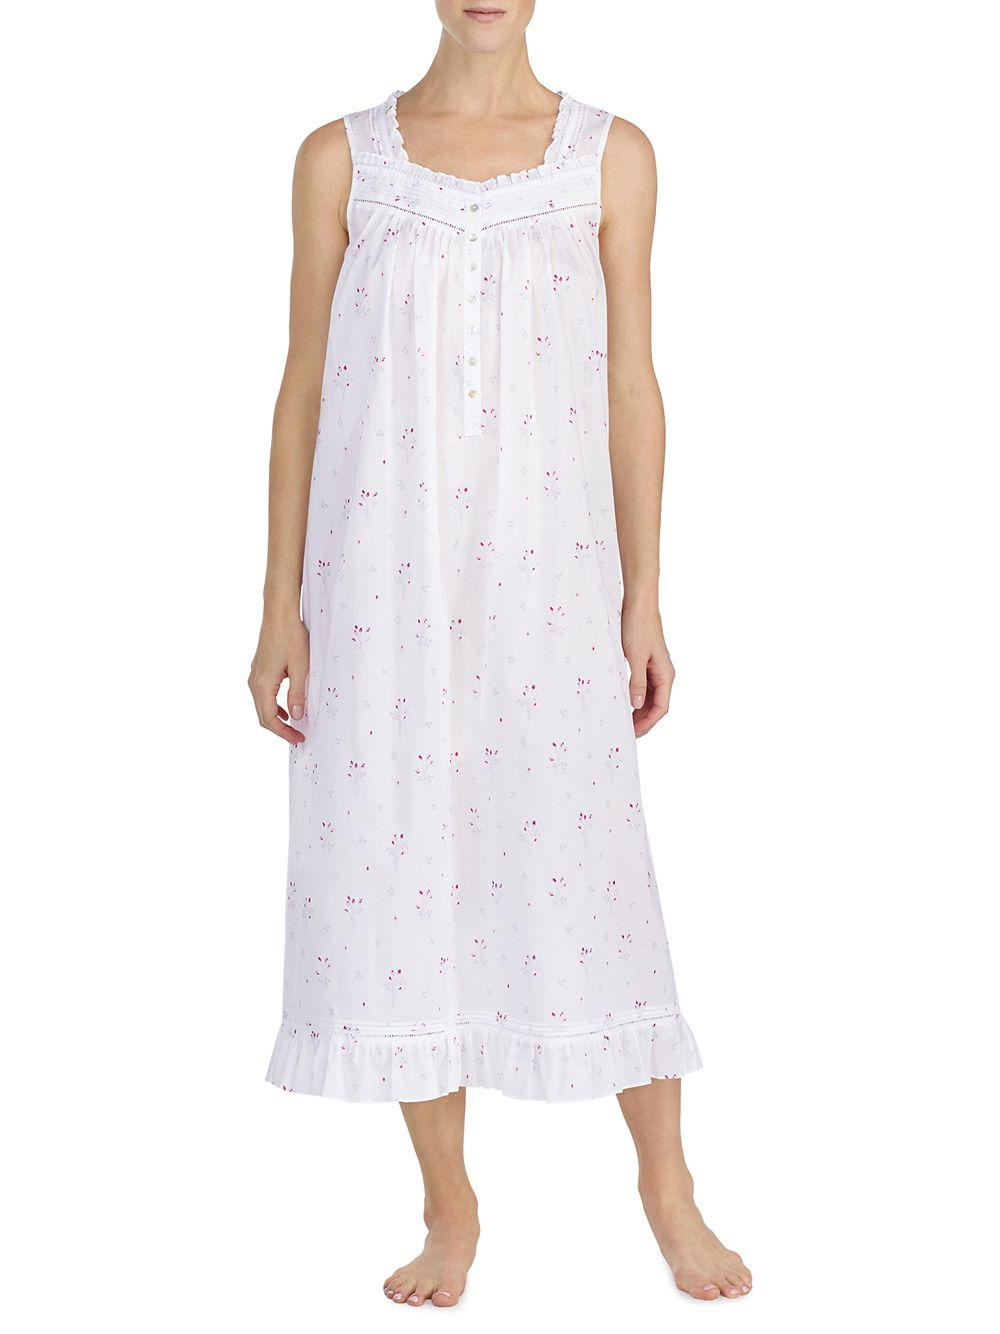 511c9a8ee4 Lyst - Eileen West Sleeveless Ballet Nightgown in White